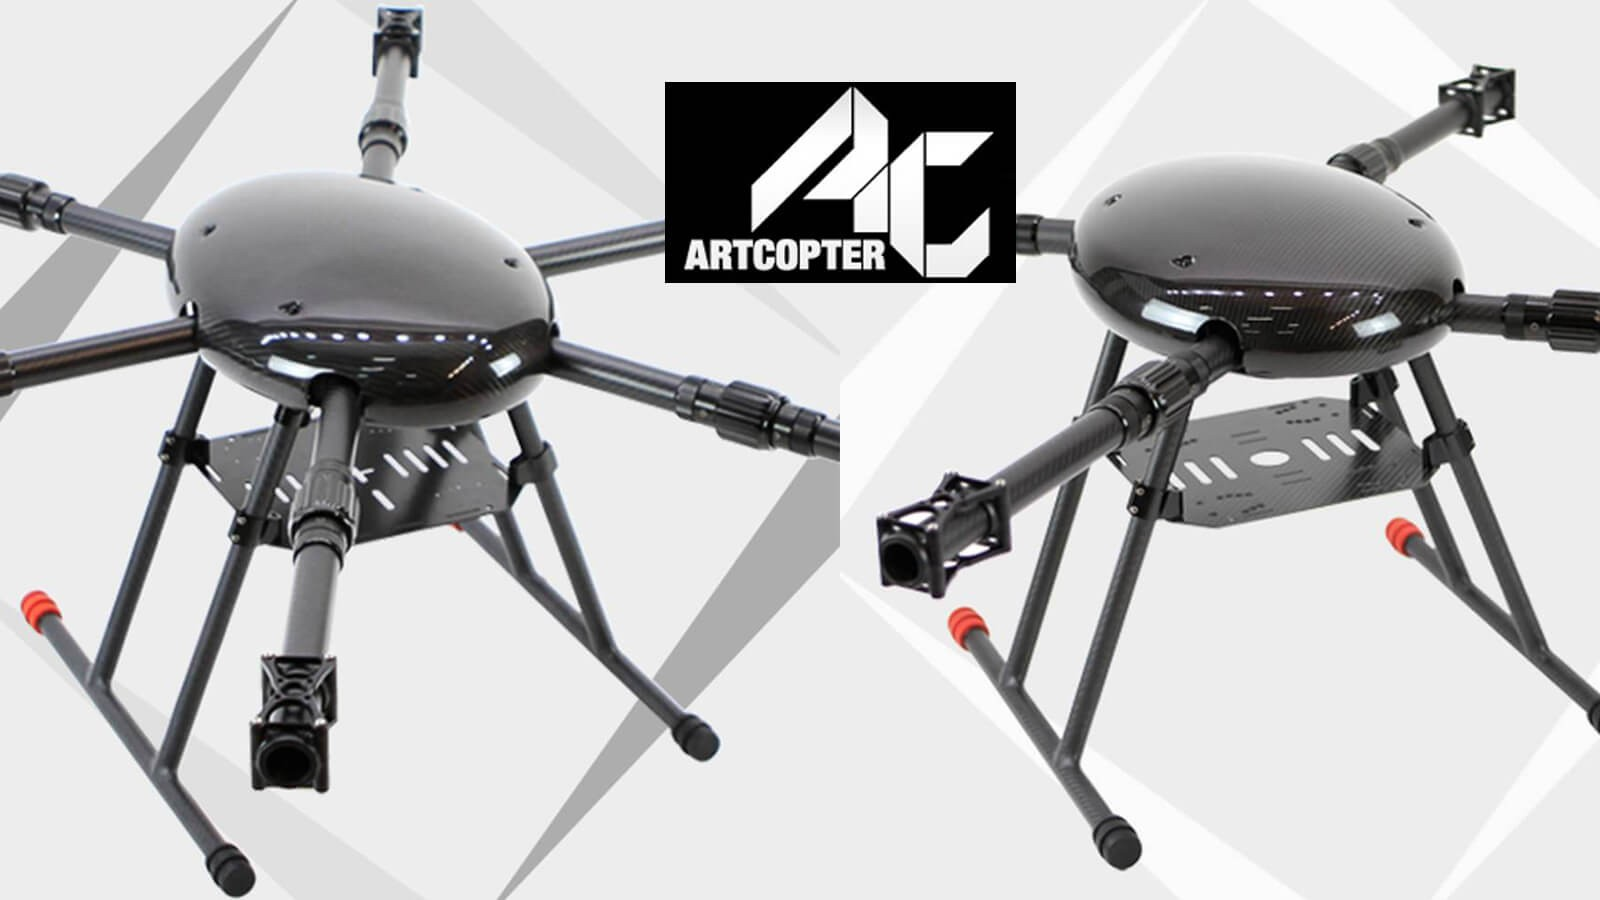 Artcopter Quadcopter und Hexacopter Frames